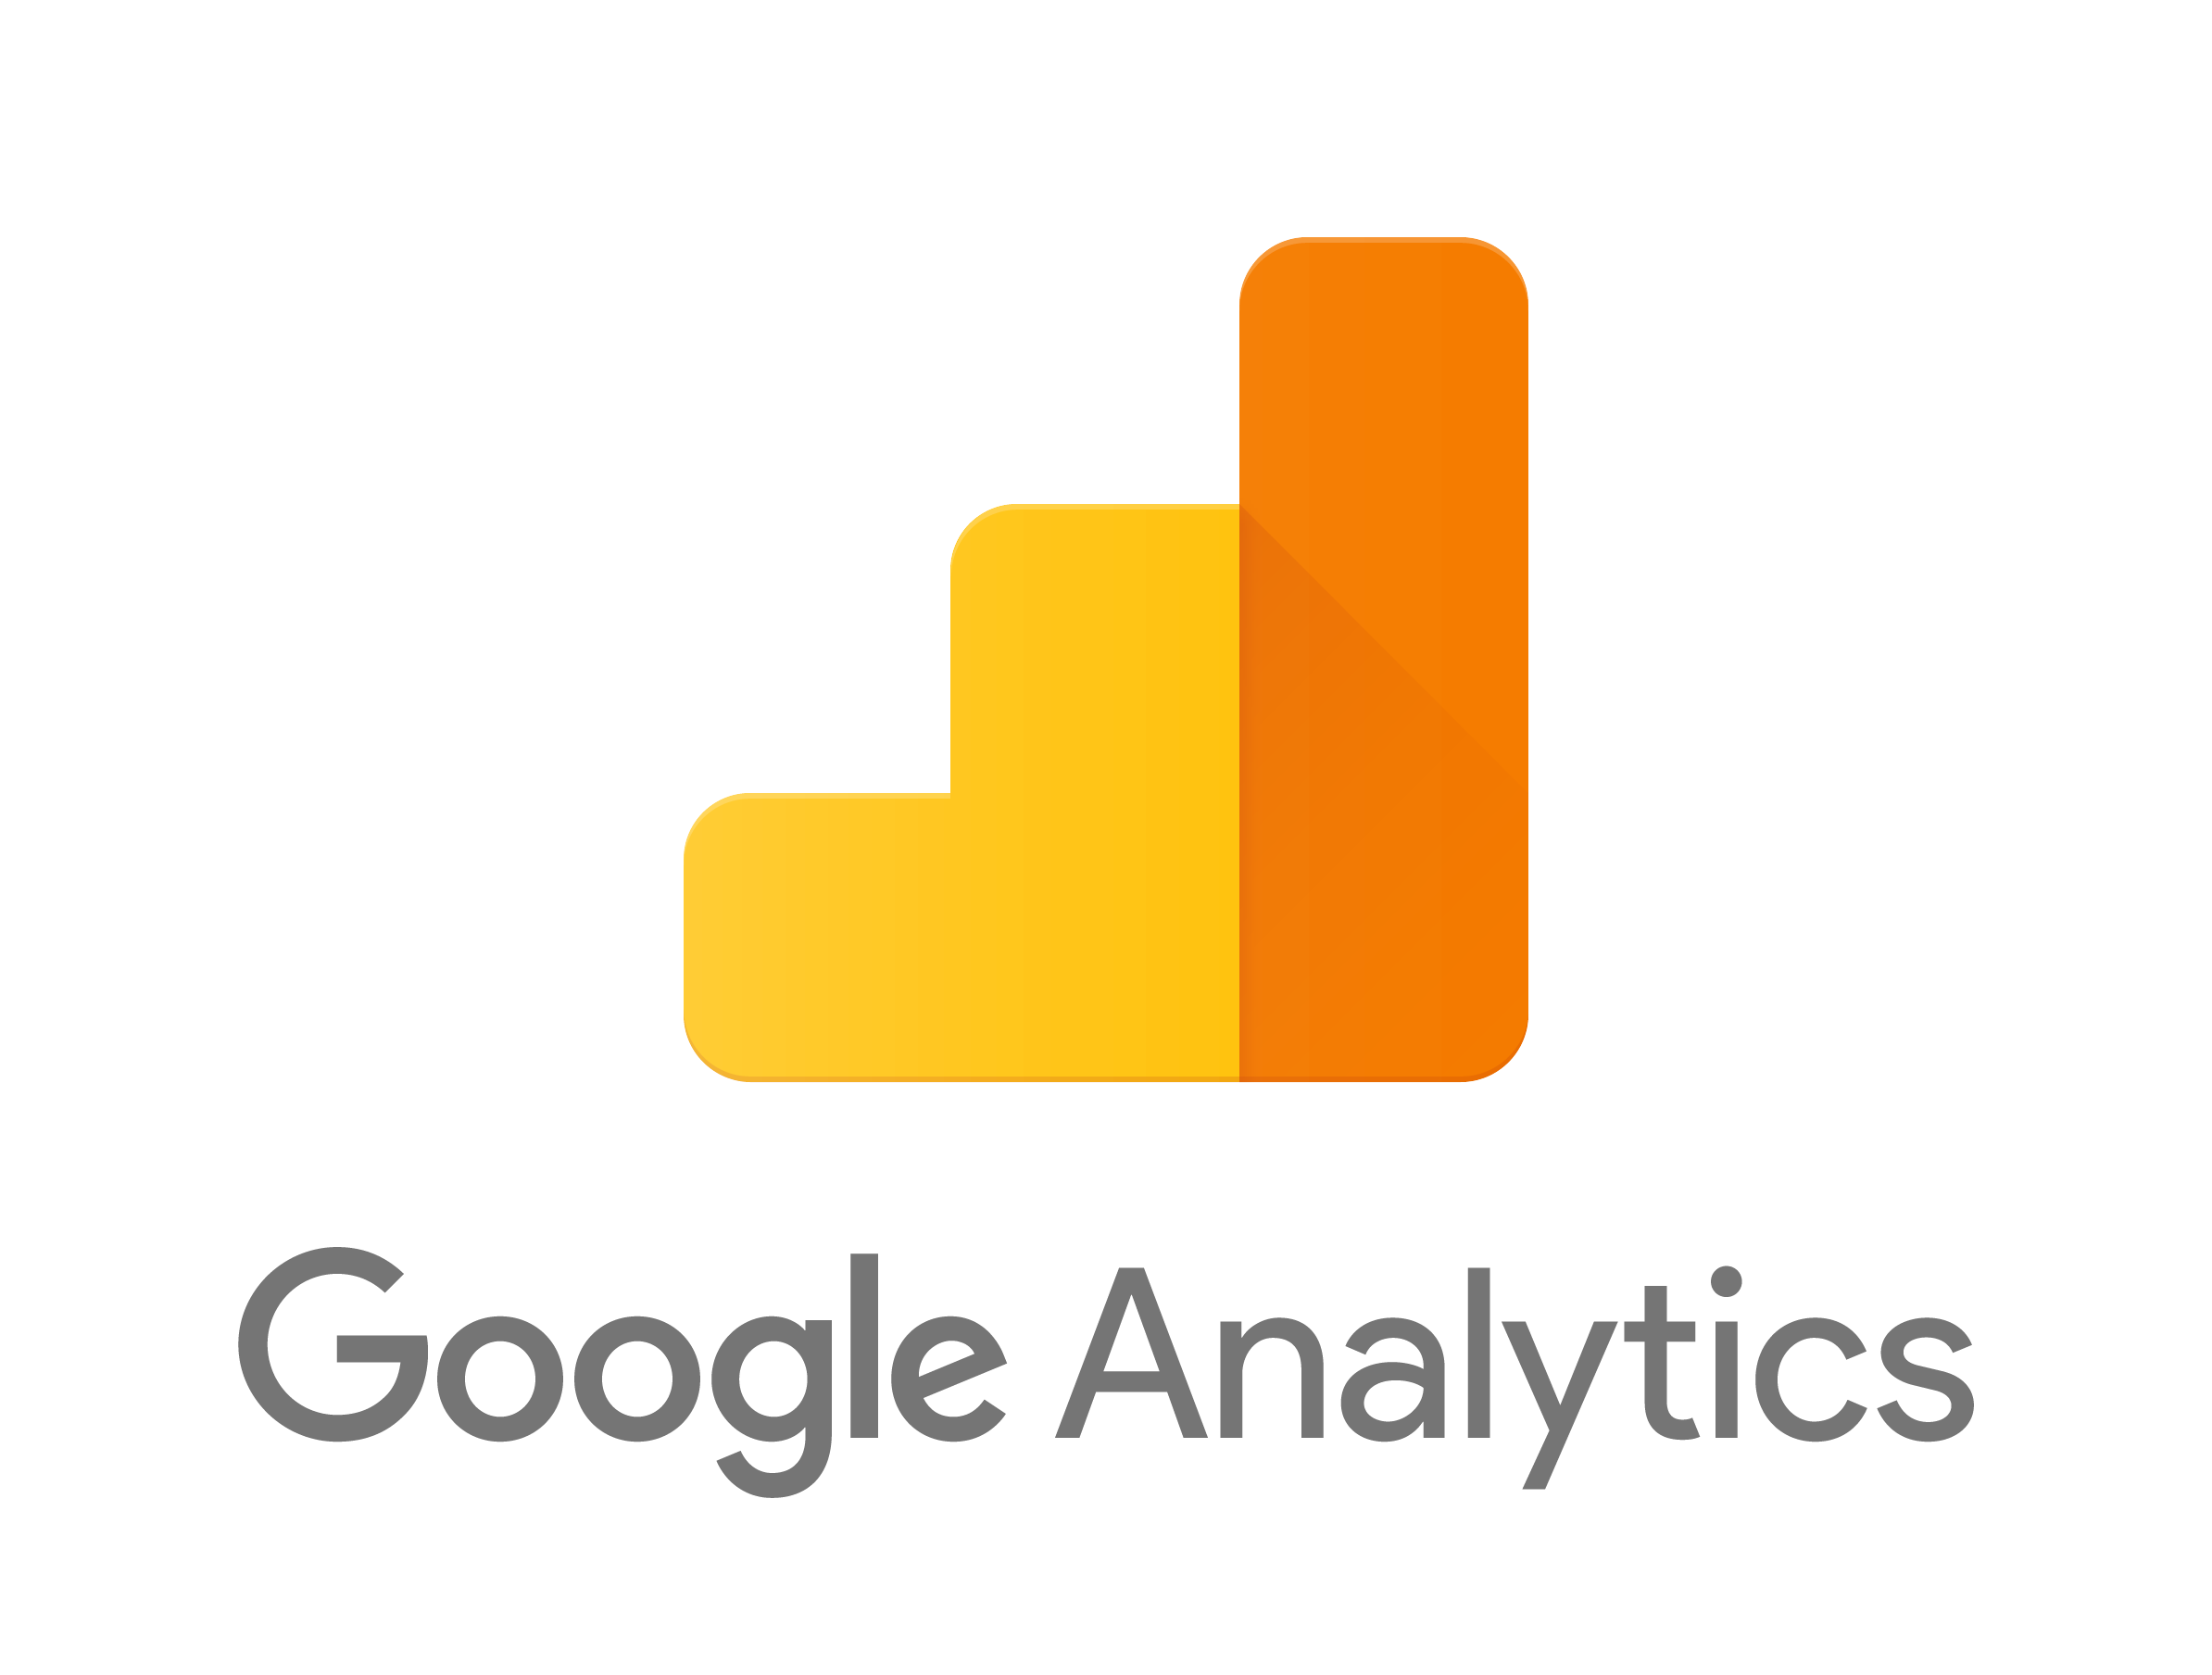 Meten is weten met Google Analytics